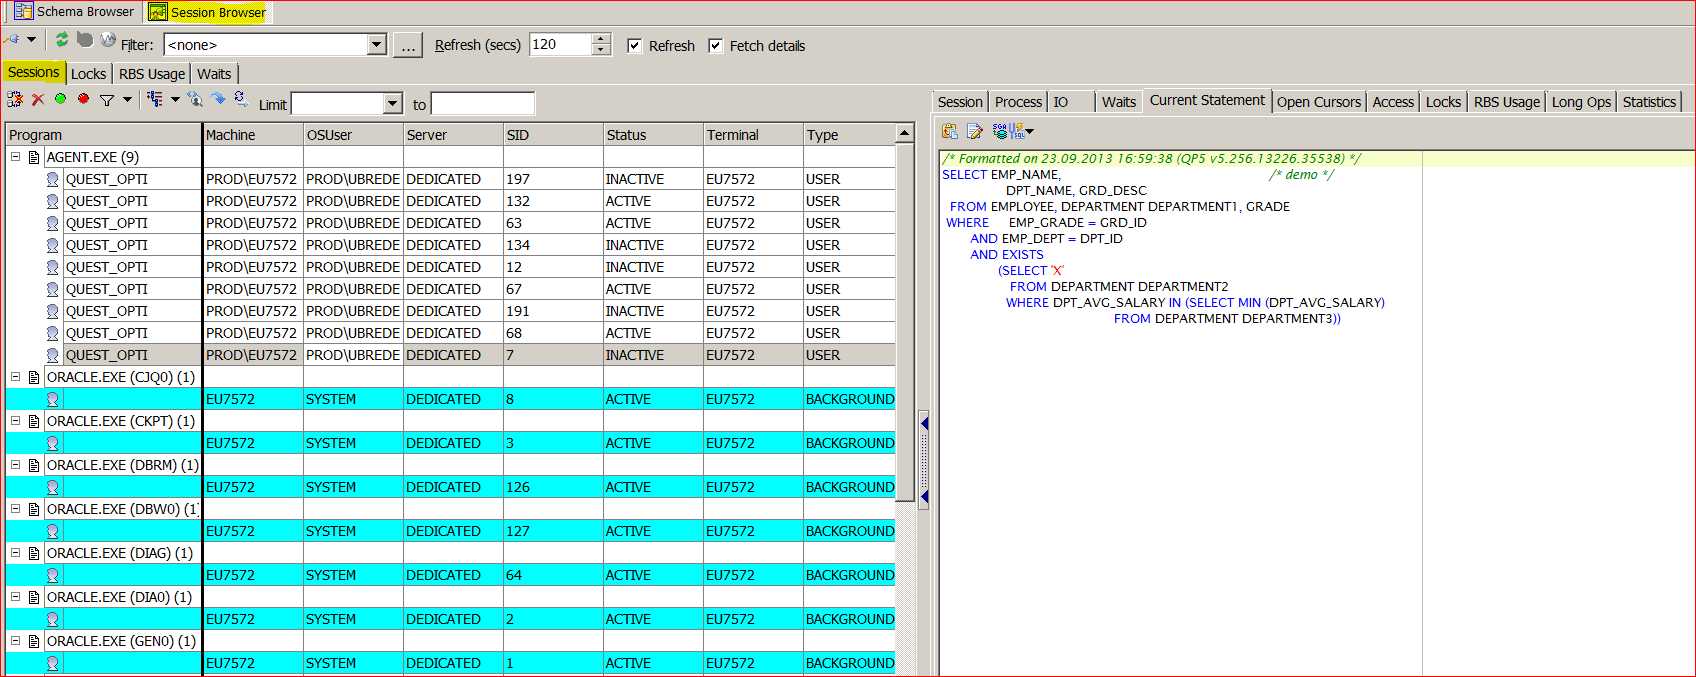 has also a Session Browser and shows the sessions on your MS SQL Server